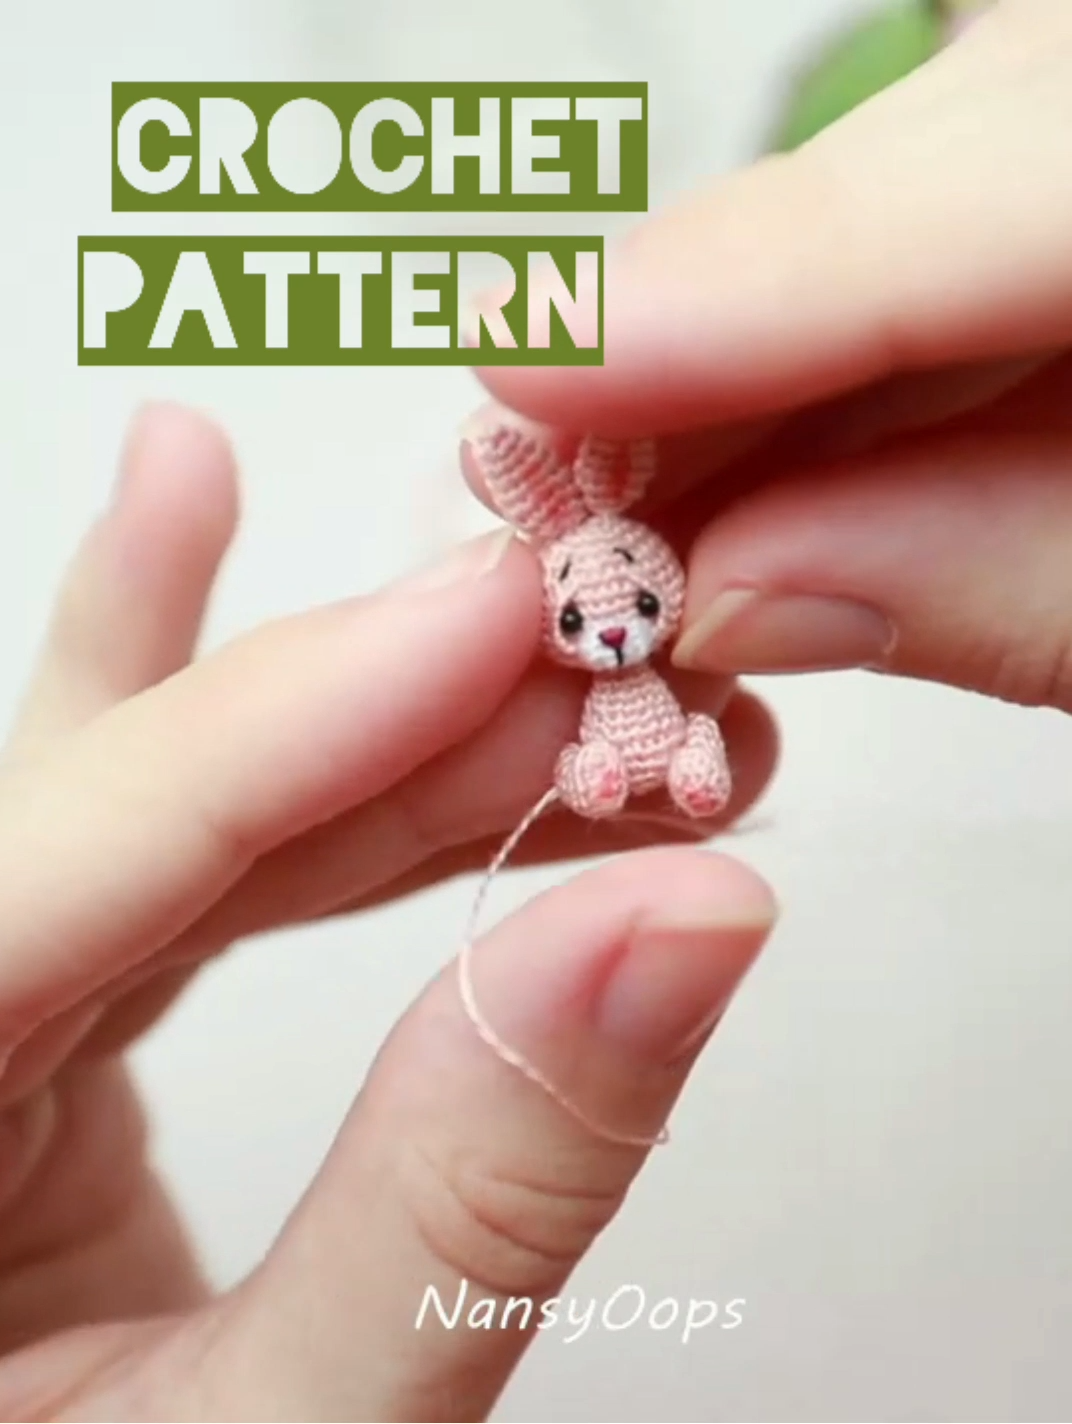 Crochet bunny pattern micro amigurumi pdf tutotial amigurumi bunny pattern by NansyOops#design #model #dress #shoes #heels #styles #outfit #purse #jewelry #shopping #glam #love #amazing #style #swag